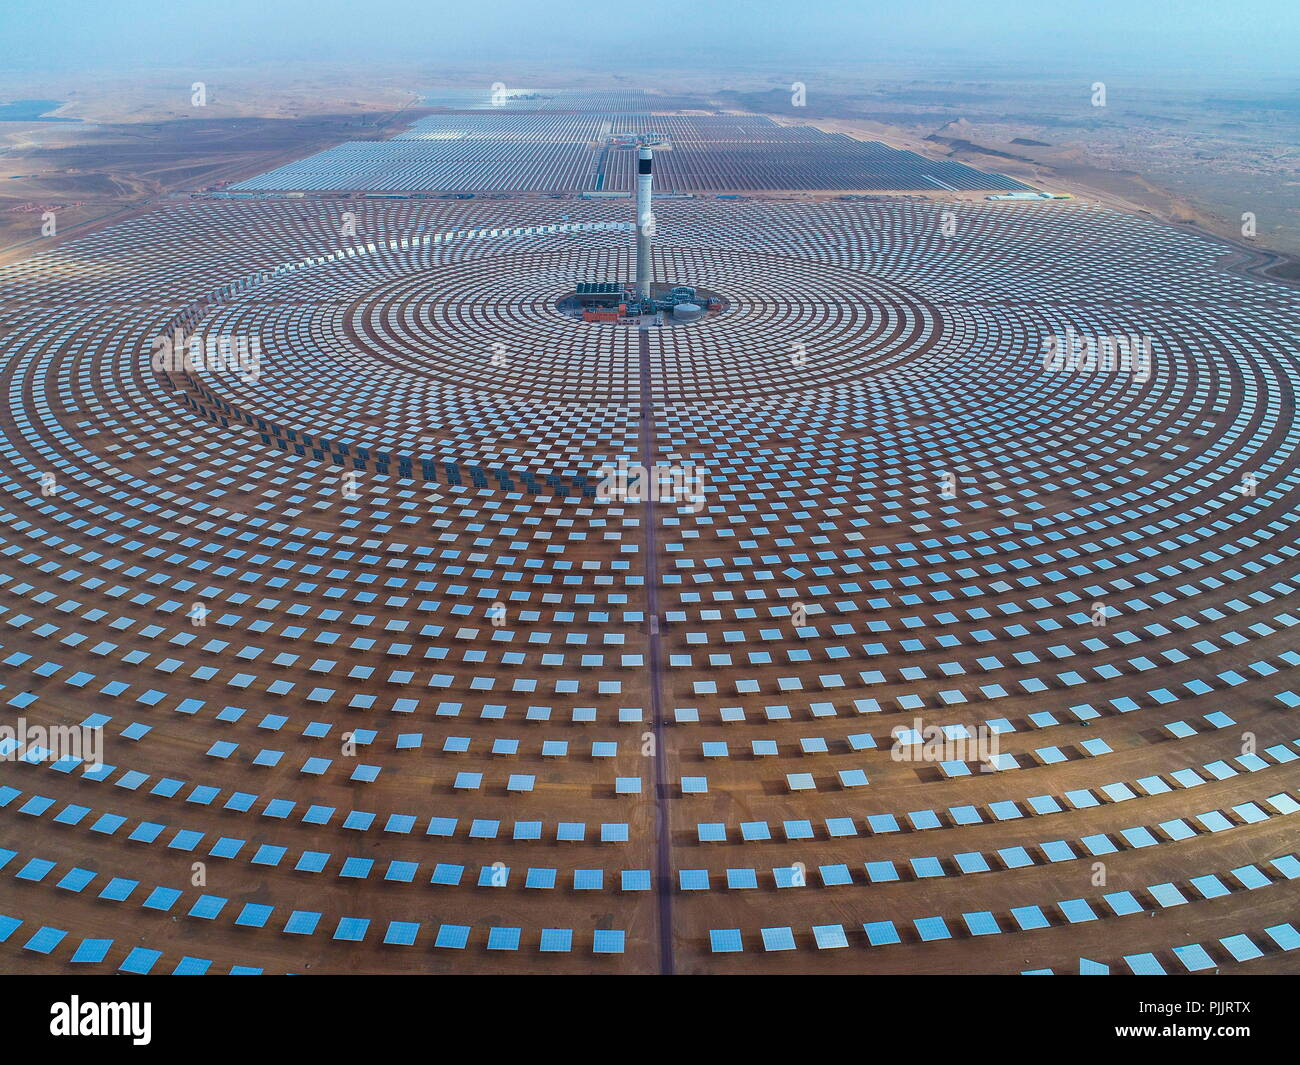 Ouarzazate, Morocco. 8th Sep, 2018. Photo provided by Shandong Electric Power Construction Co., Ltd (SEPCO III) shows part of Morocco's NOOR II and NOOR III Concentrated Solar Power (CSP) project in Ouarzazate, Morocco, on June 8, 2018. TO GO WITH Feature: Chinese builders help Morocco restructure energy mix via solar power projects. Credit: Xinhua/Alamy Live News Stock Photo